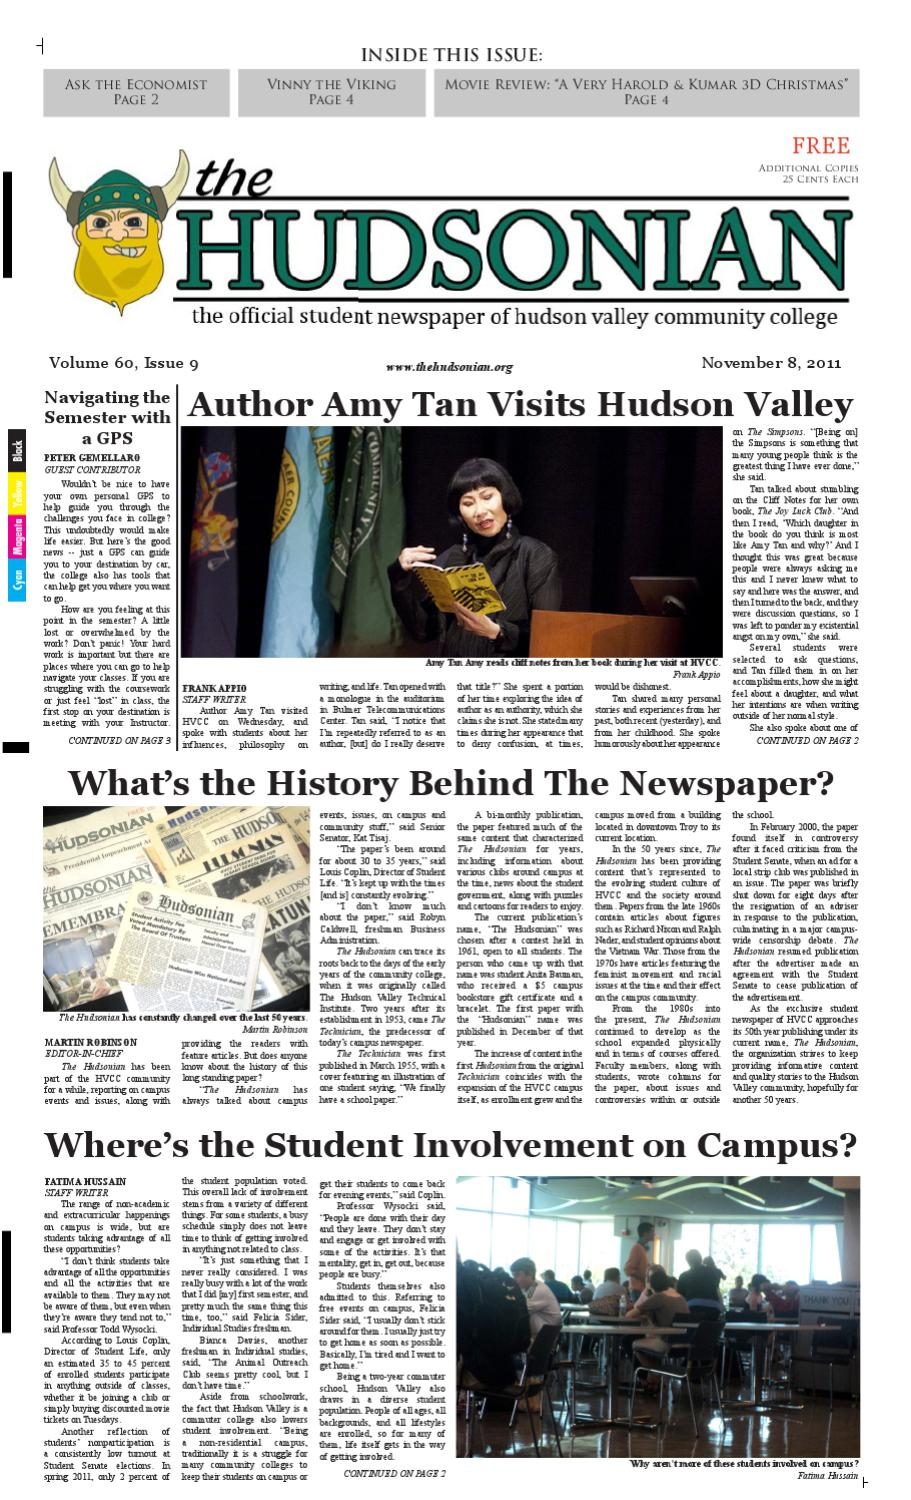 Volume 60 Issue 09 by The Hudsonian Student Newspaper - issuu